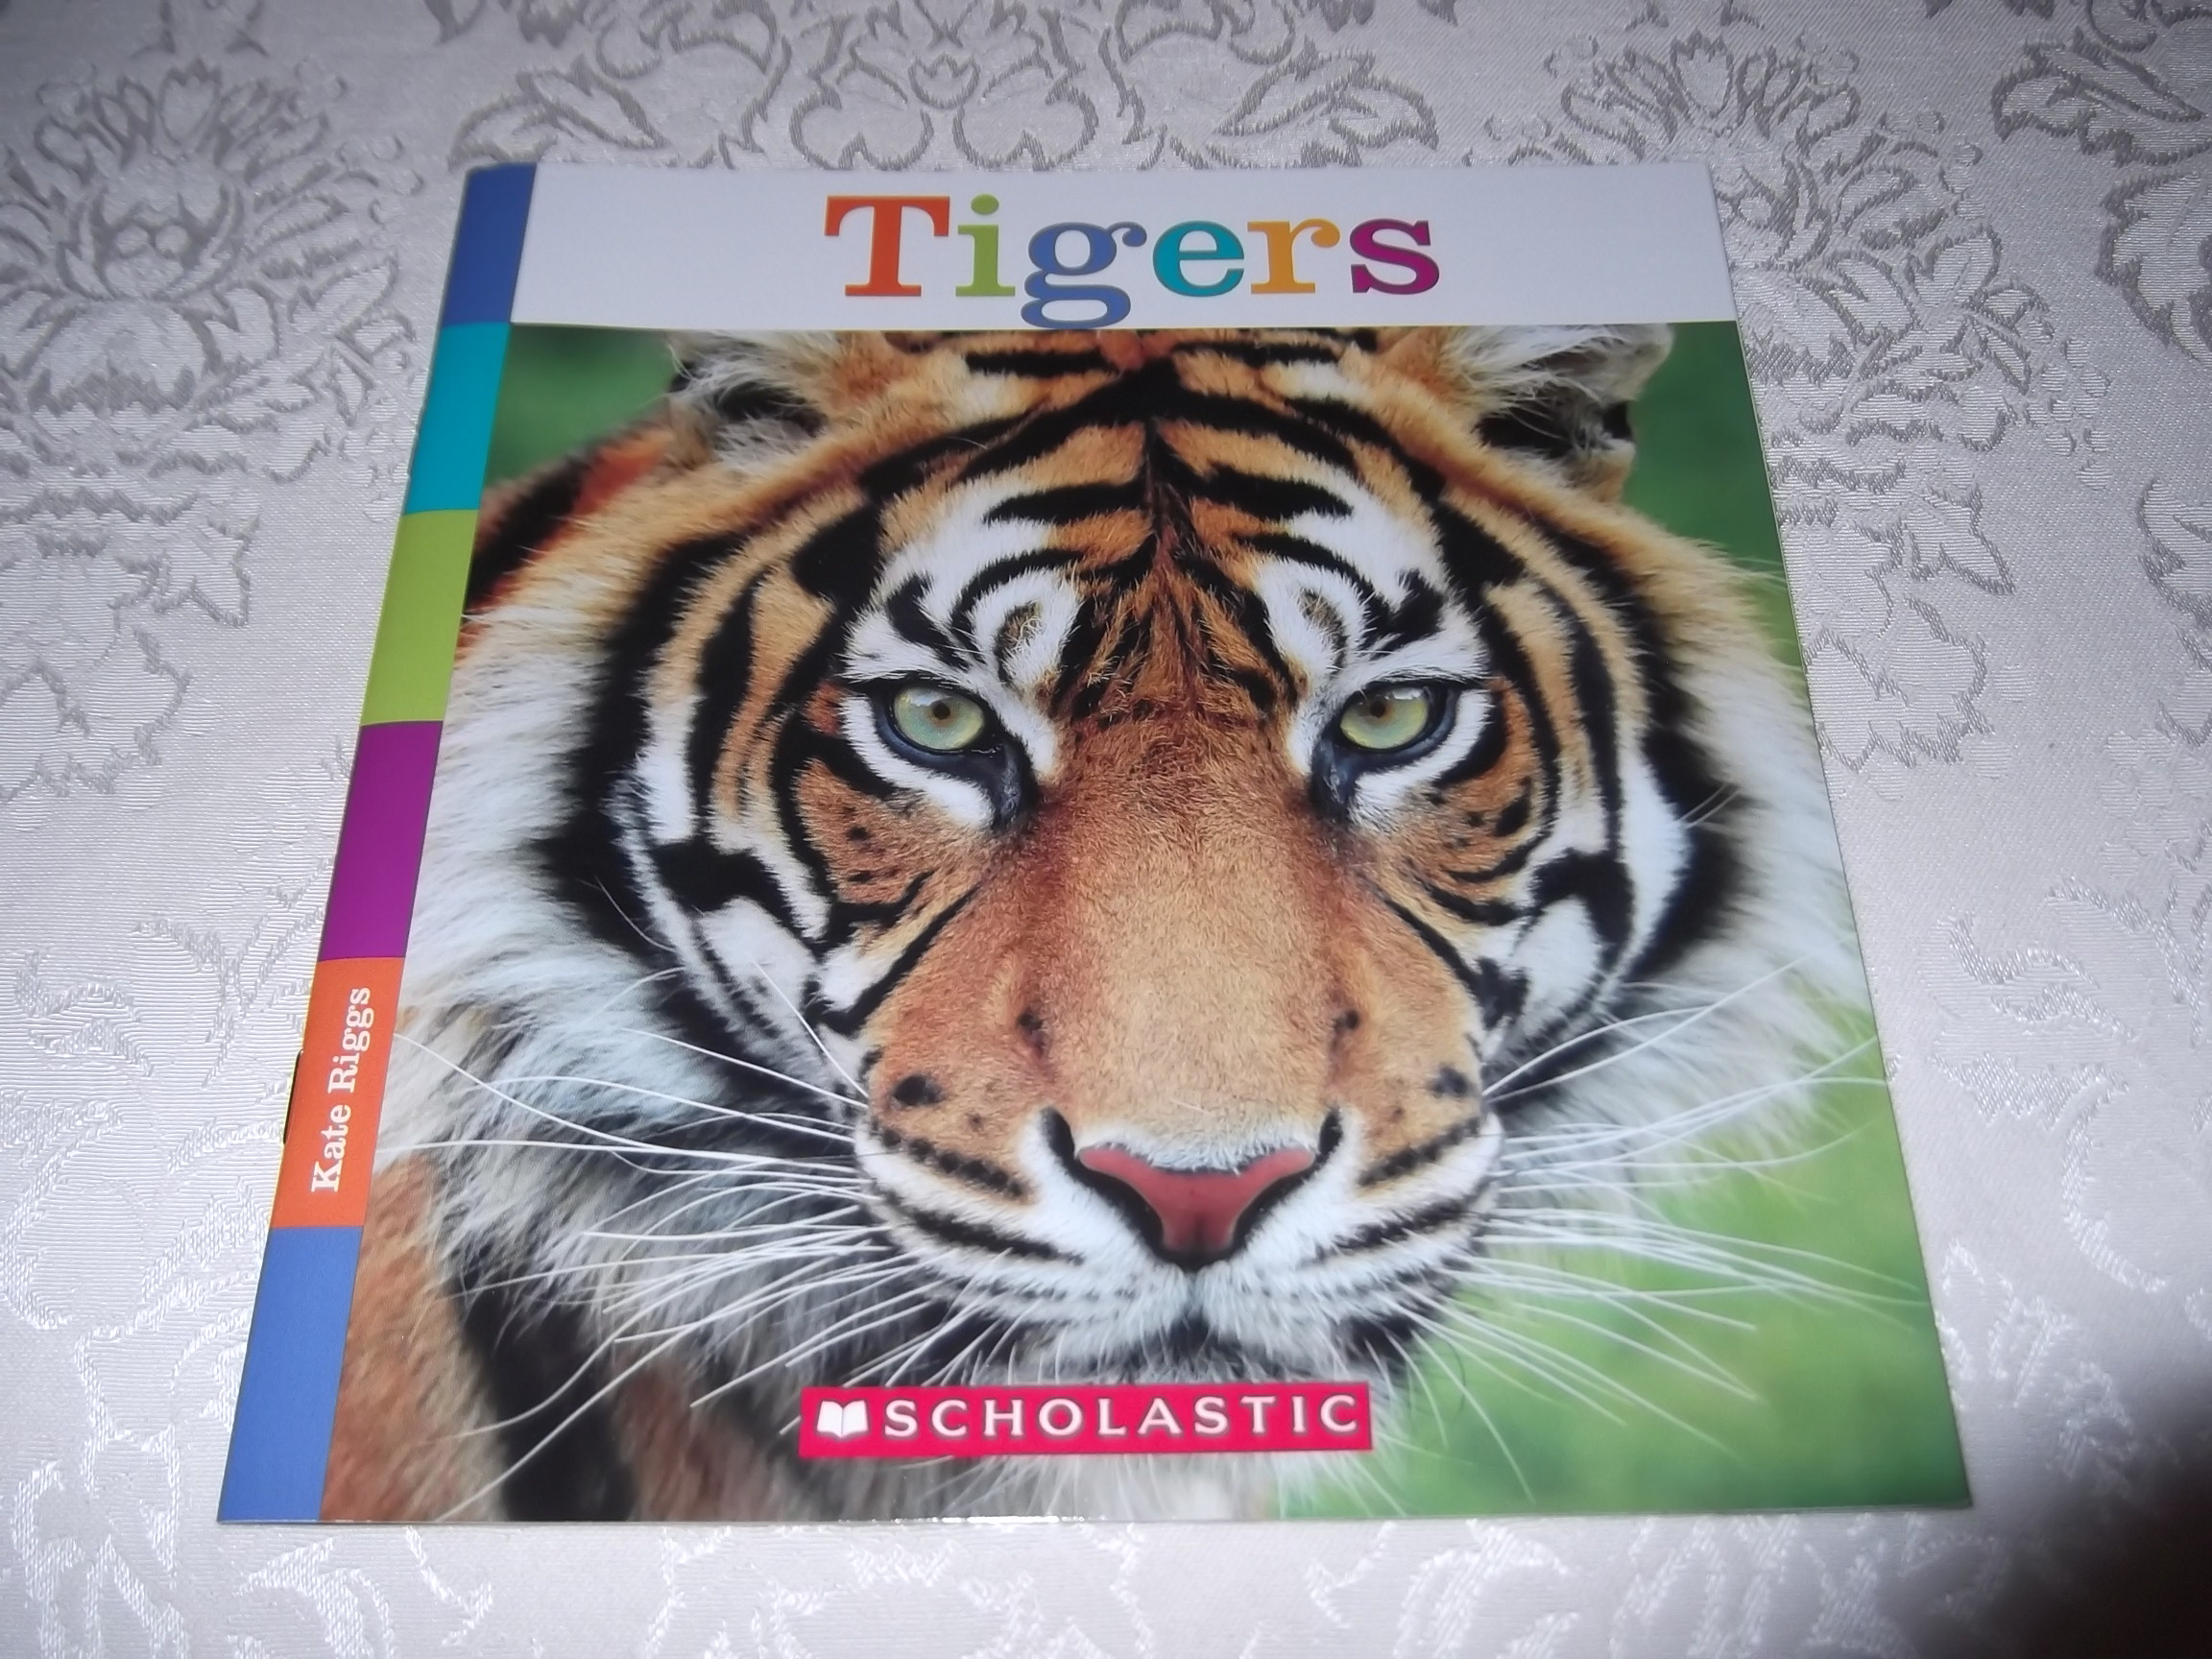 Tigers Kate Riggs brand new softcover